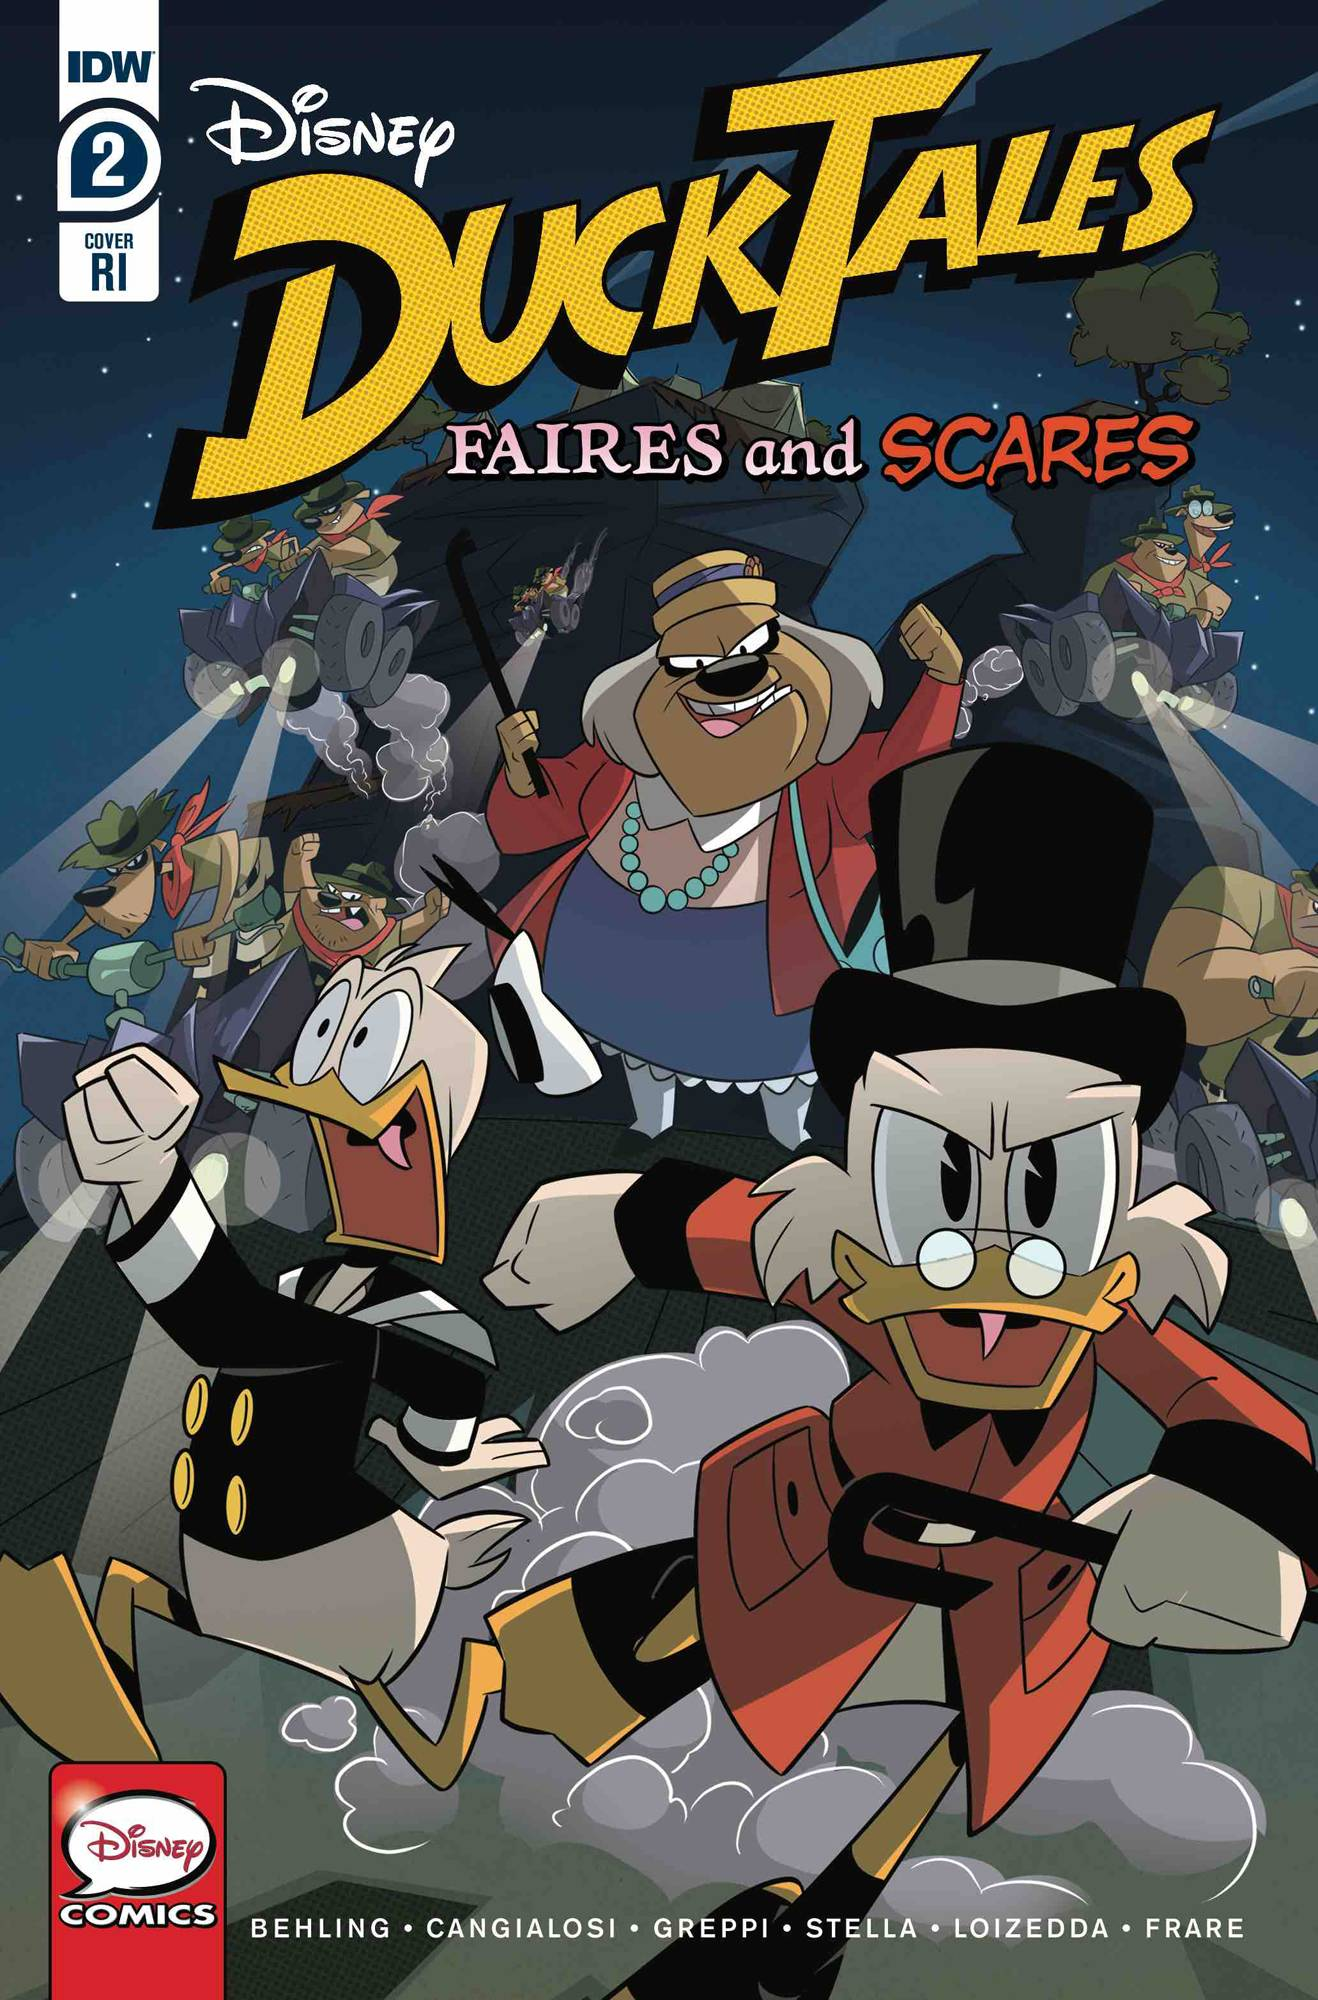 DUCKTALES FAIRES & SCARES #2 (OF 3) 10 COPY INCV DUCKTALES C